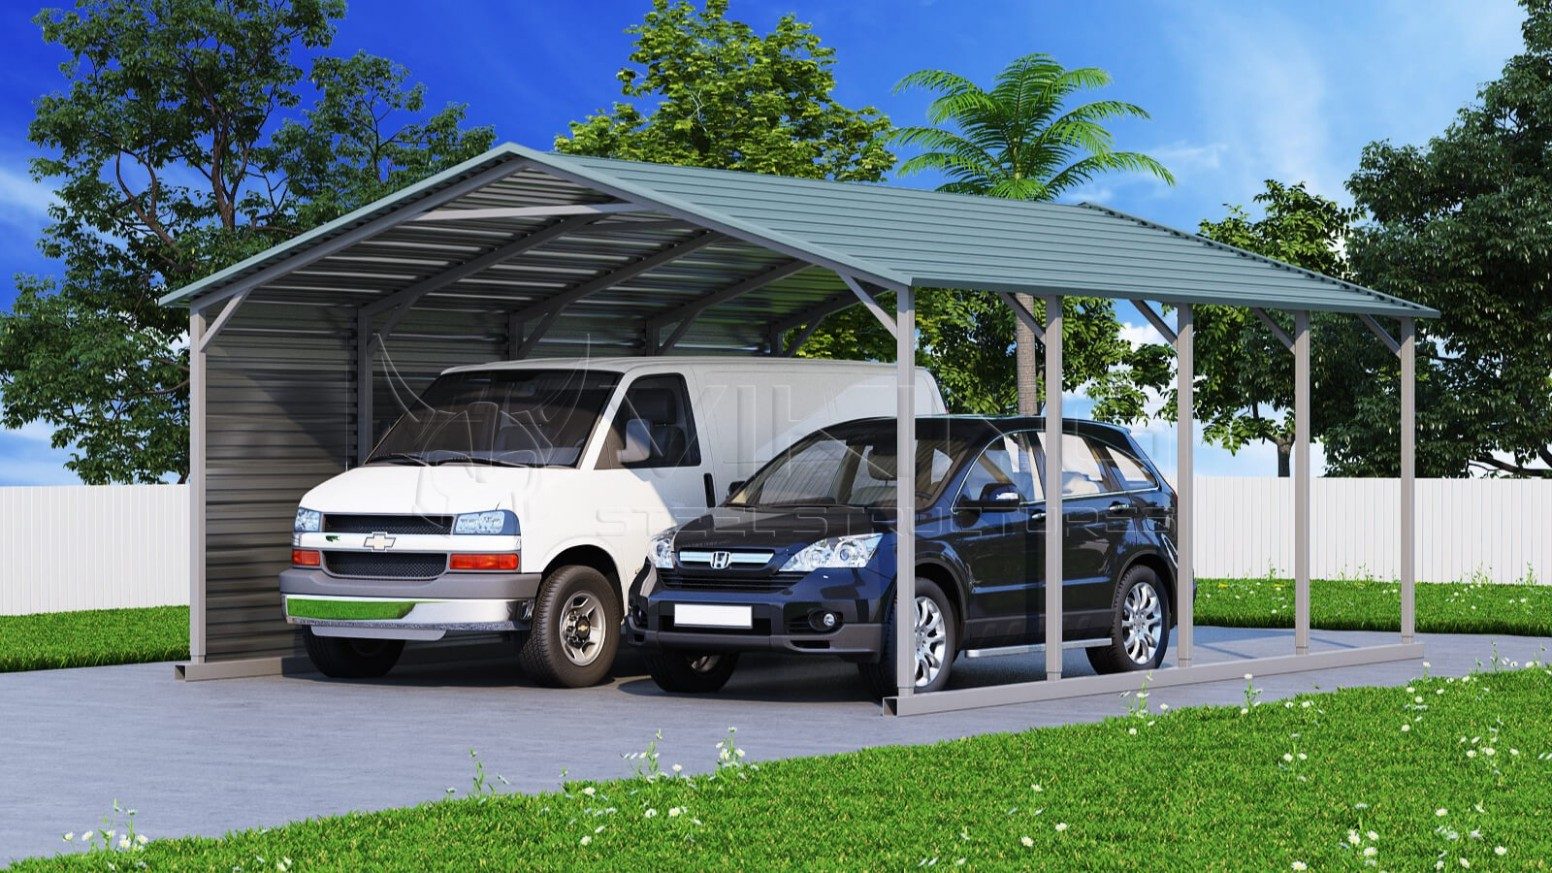 Seven Precautions You Must Take Before Attending Carports For Sale | carports for sale